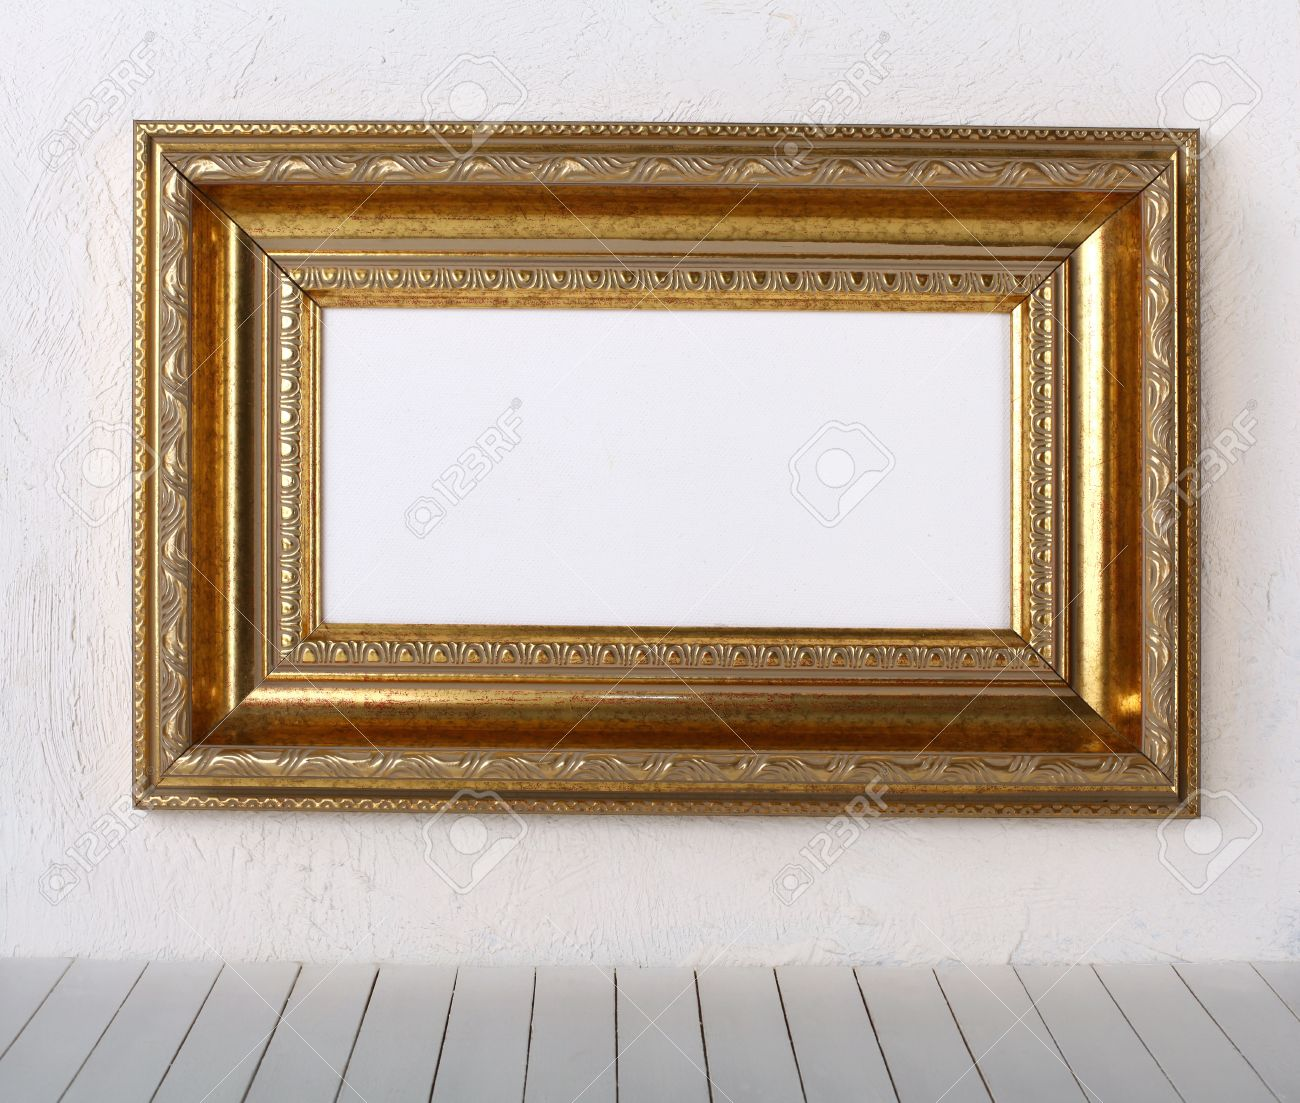 Old Frames Over The White Wall Background Stock Photo, Picture And ...